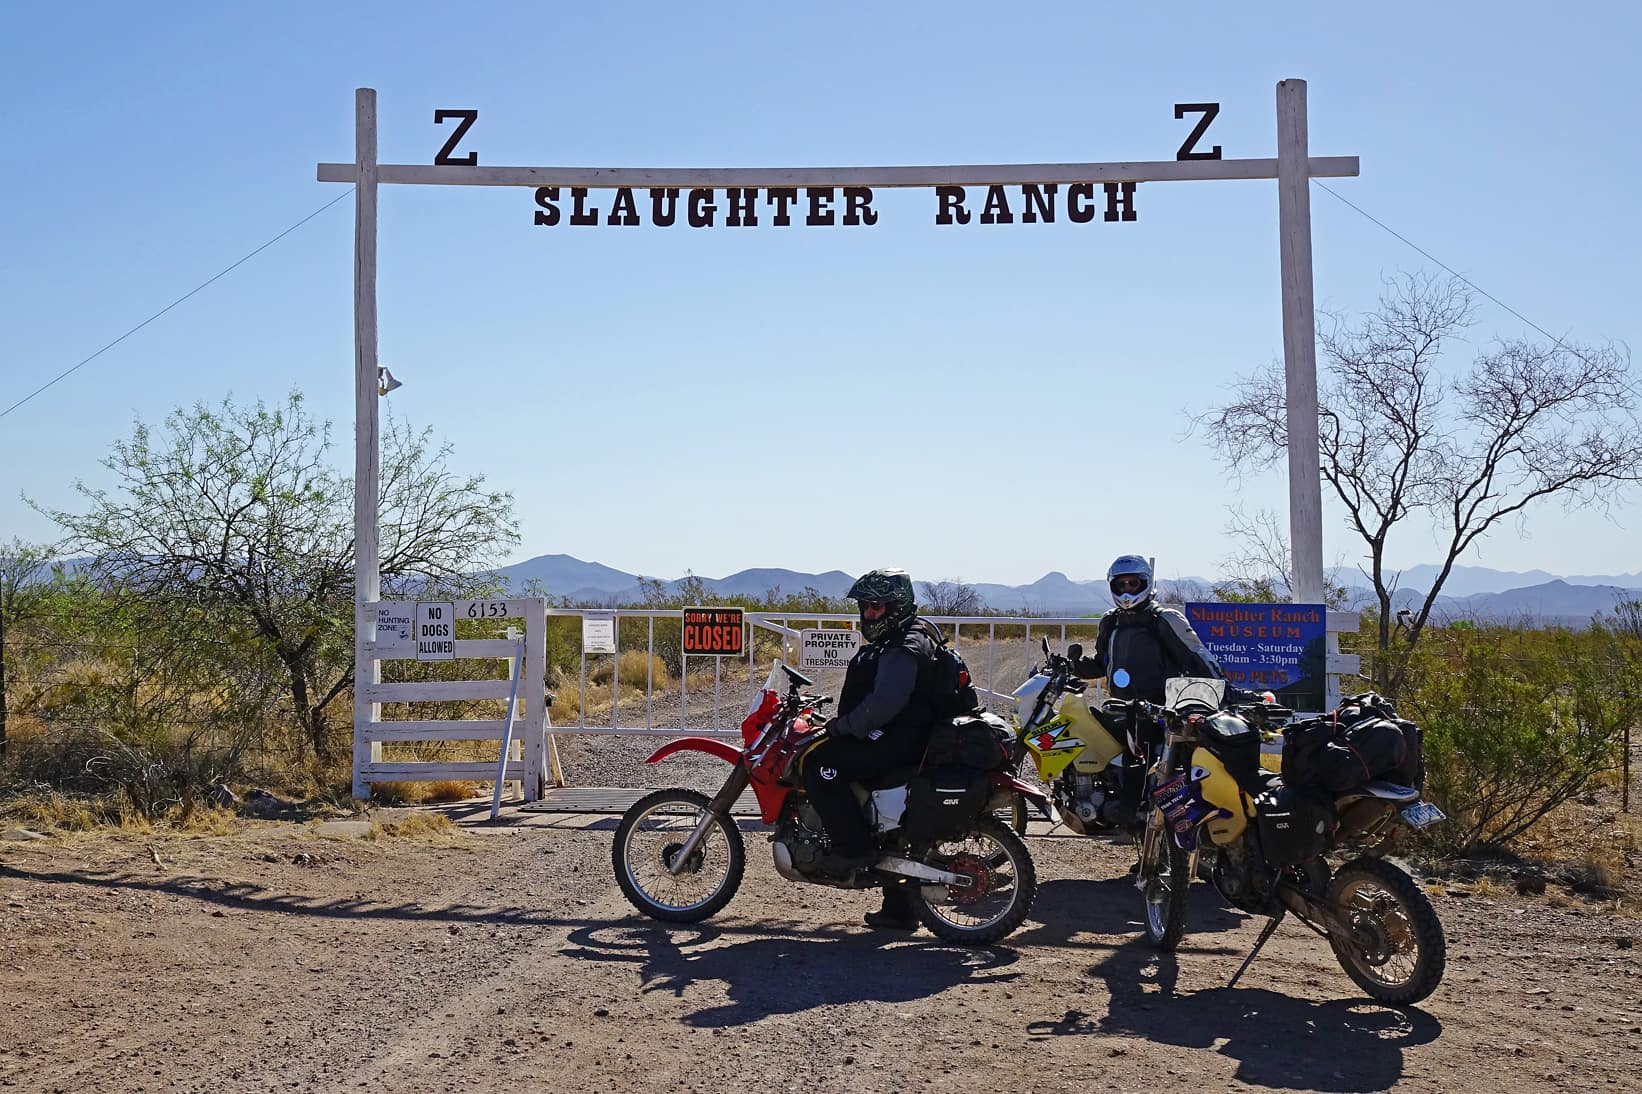 Slaughter Ranch